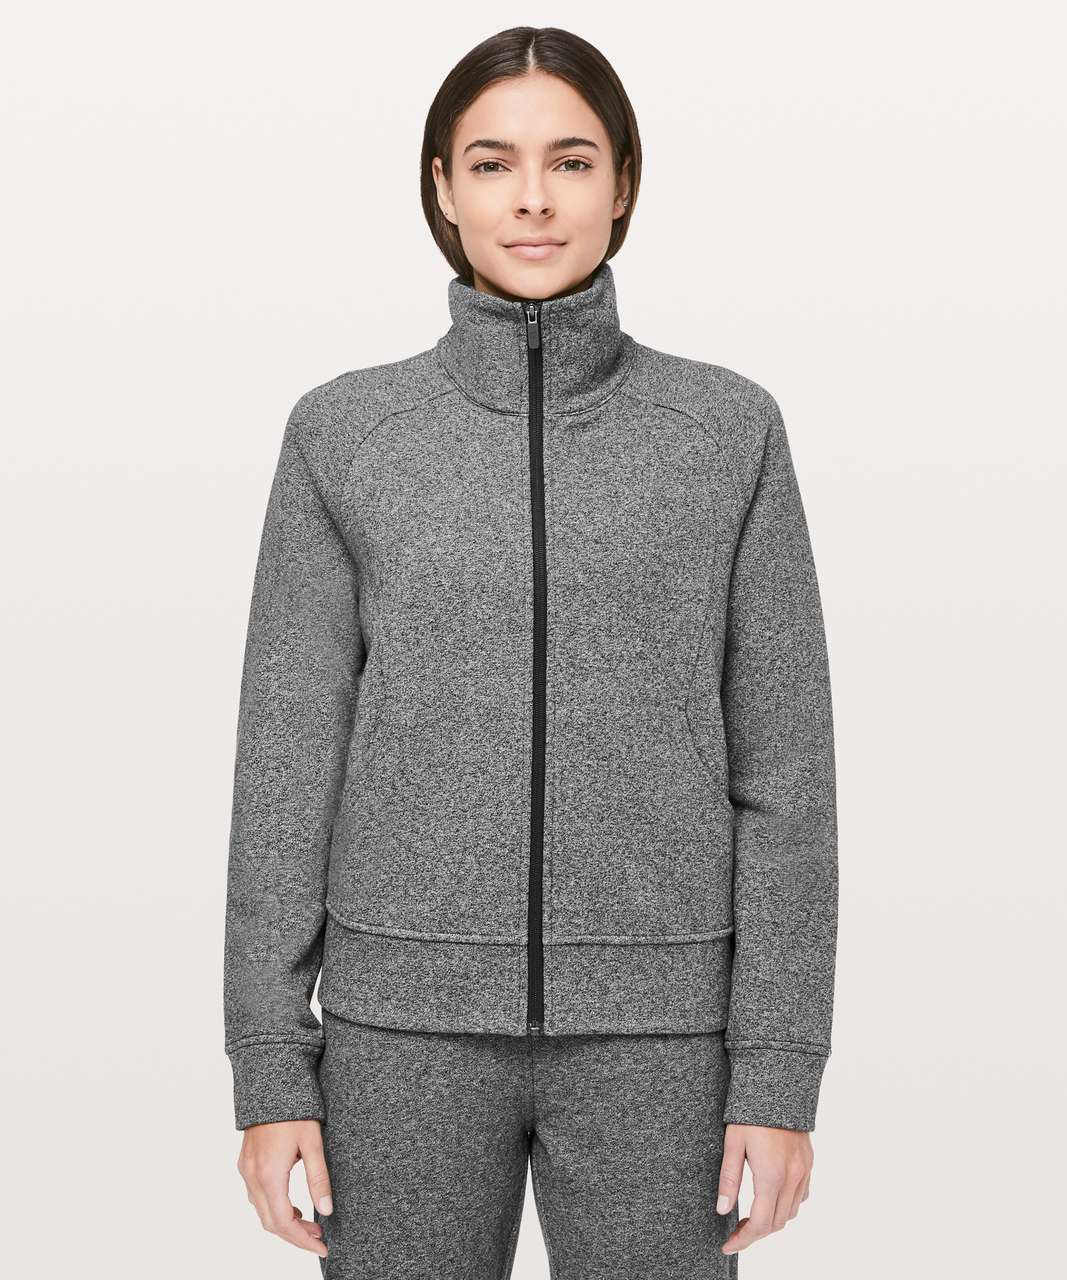 Lululemon Pleat Perfection Jacket - Heathered Speckled Black